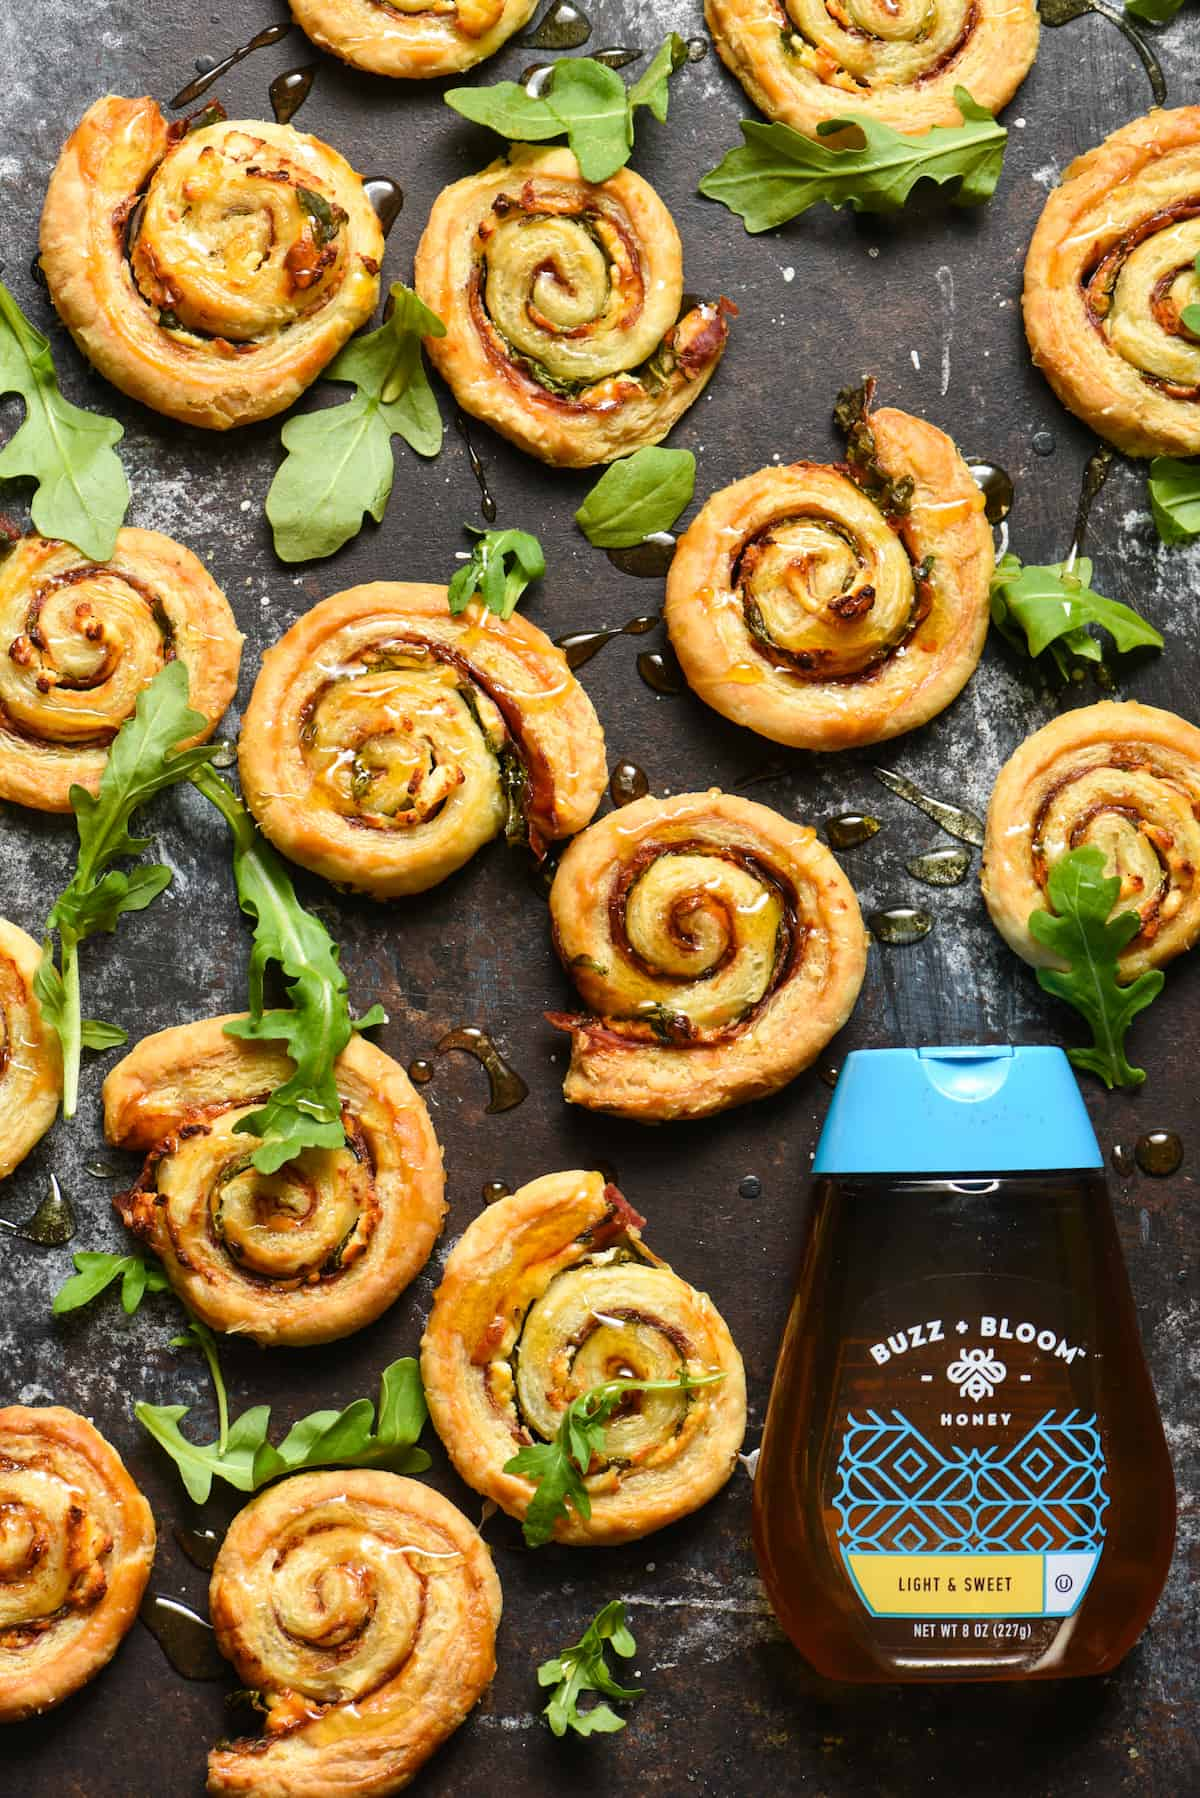 Salami & Goat Cheese Pinwheels with Honey - These easy appetizer bites are the perfect combination of savory, sweet, cheesy and crunchy! | foxeslovelemons.com